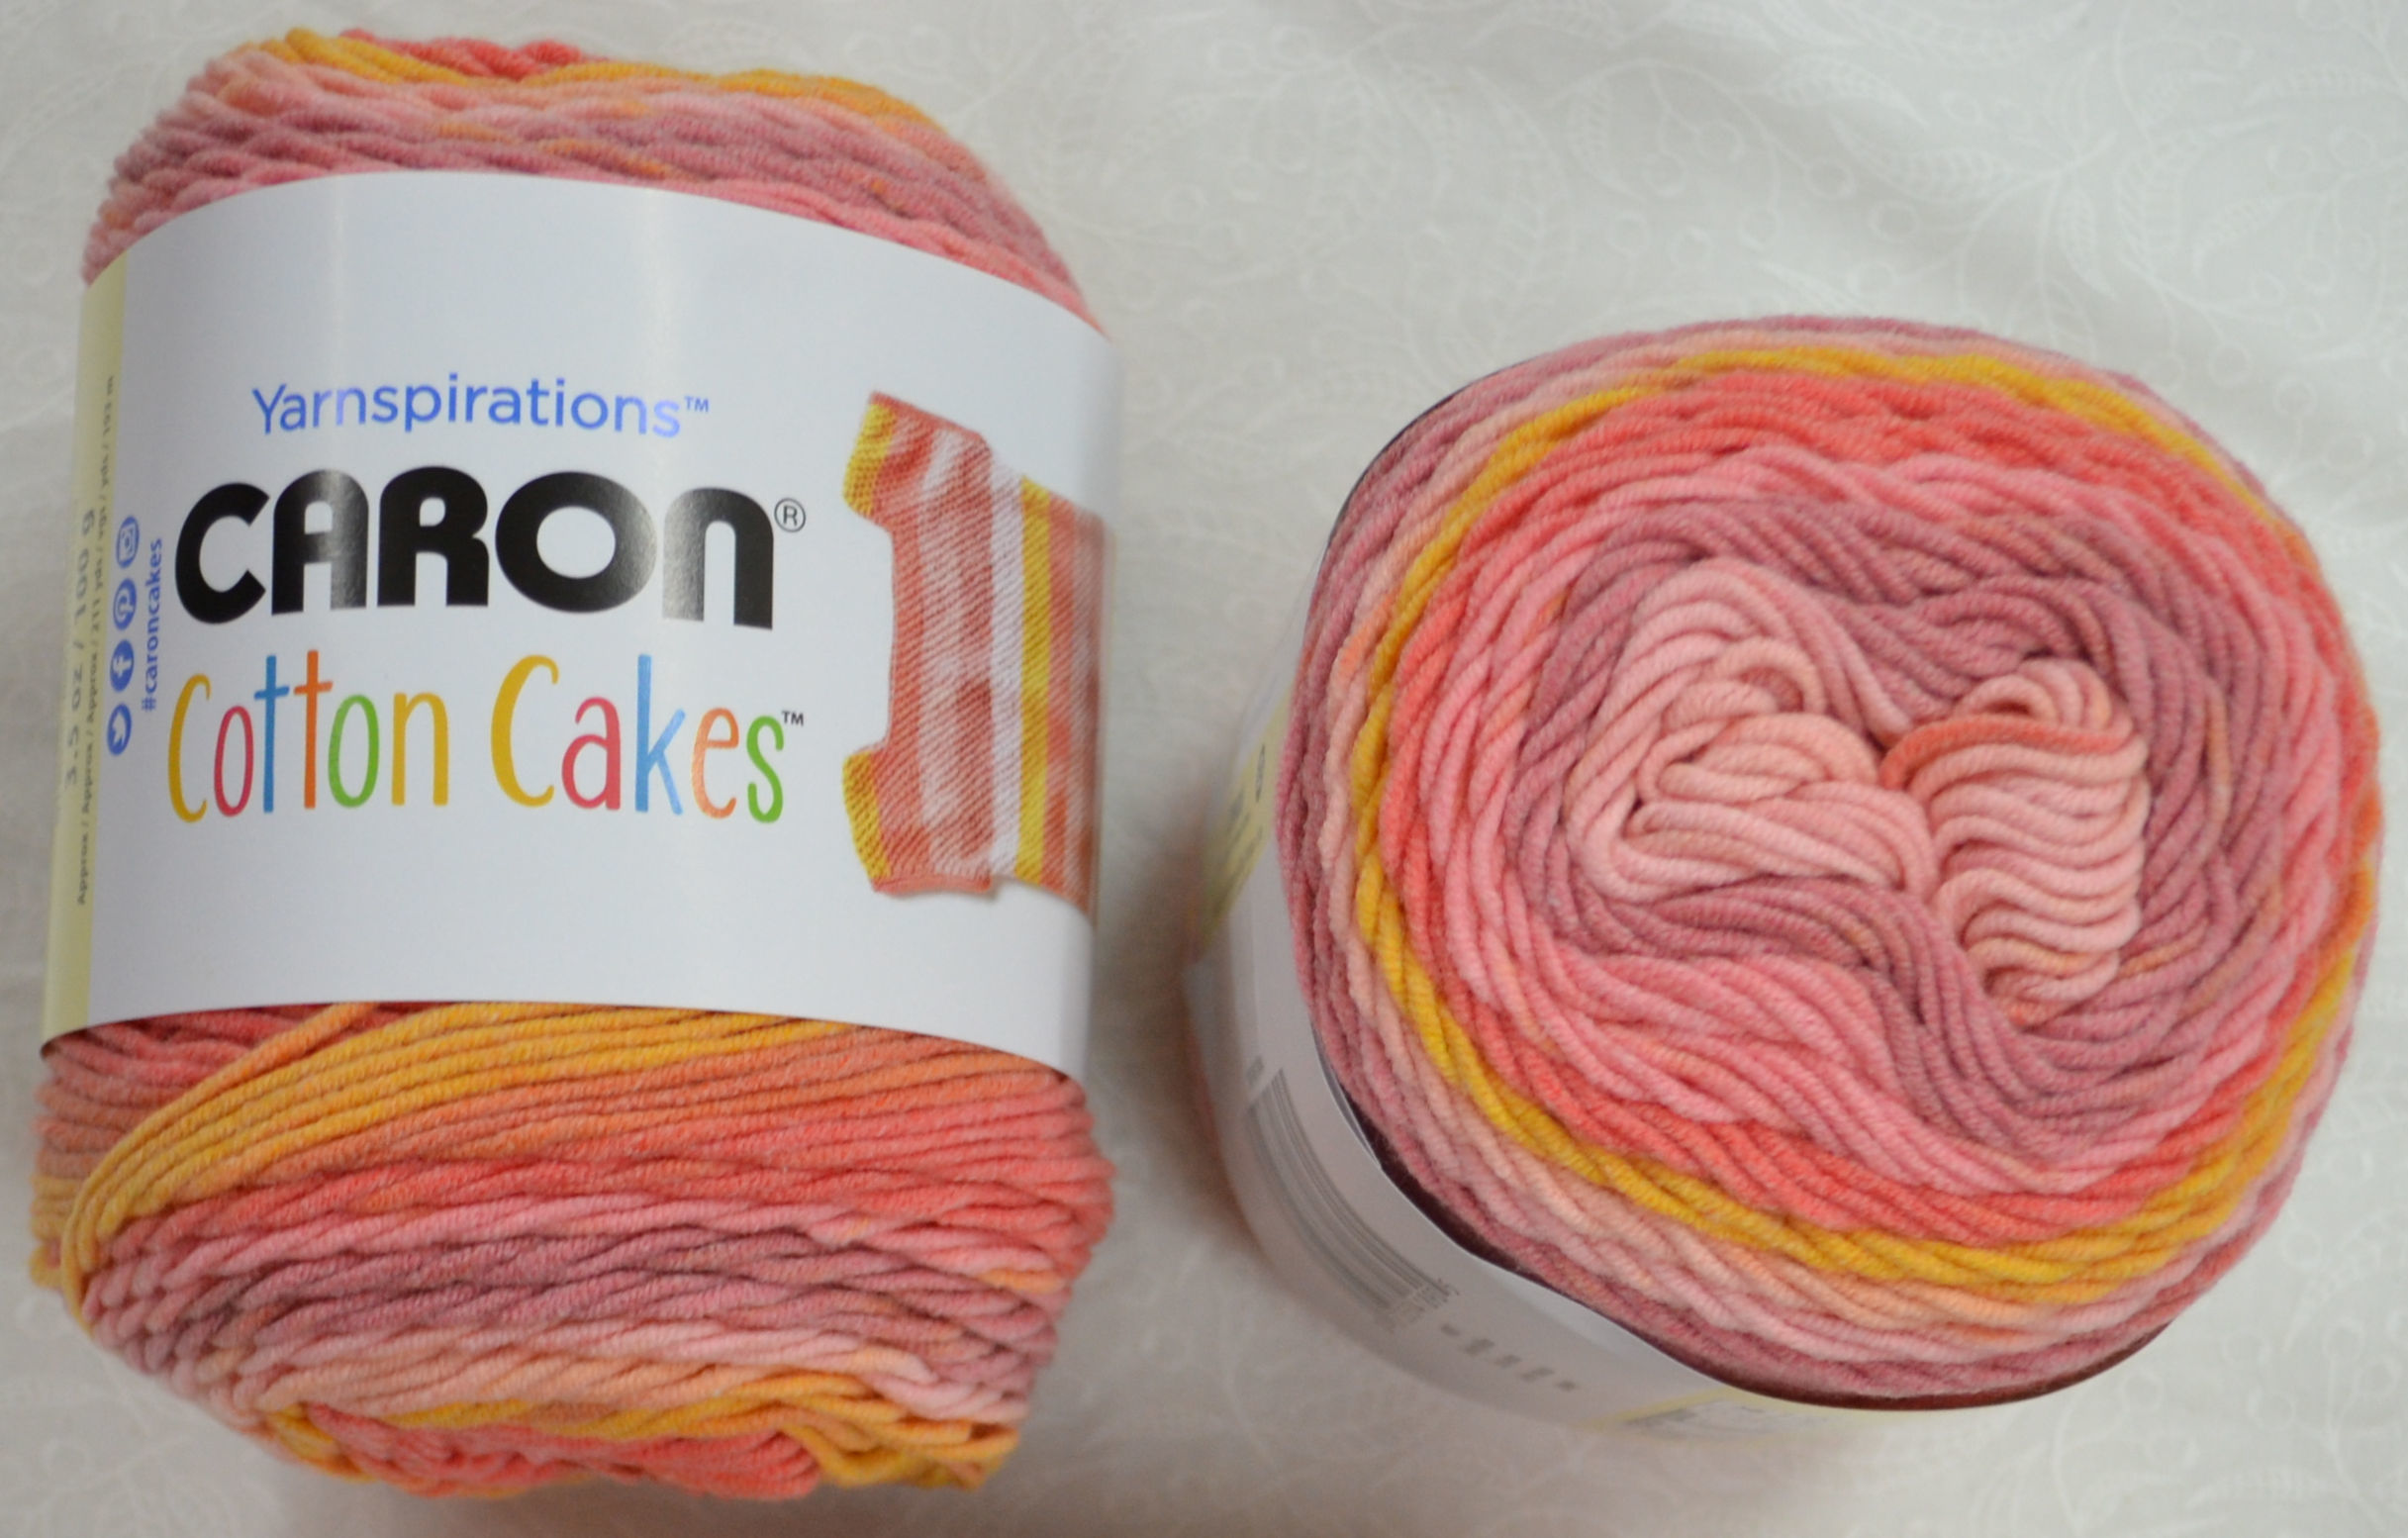 Caron Cotton Cakes, Medium Weight Cotton Blend Yarn, 100g Ball ...